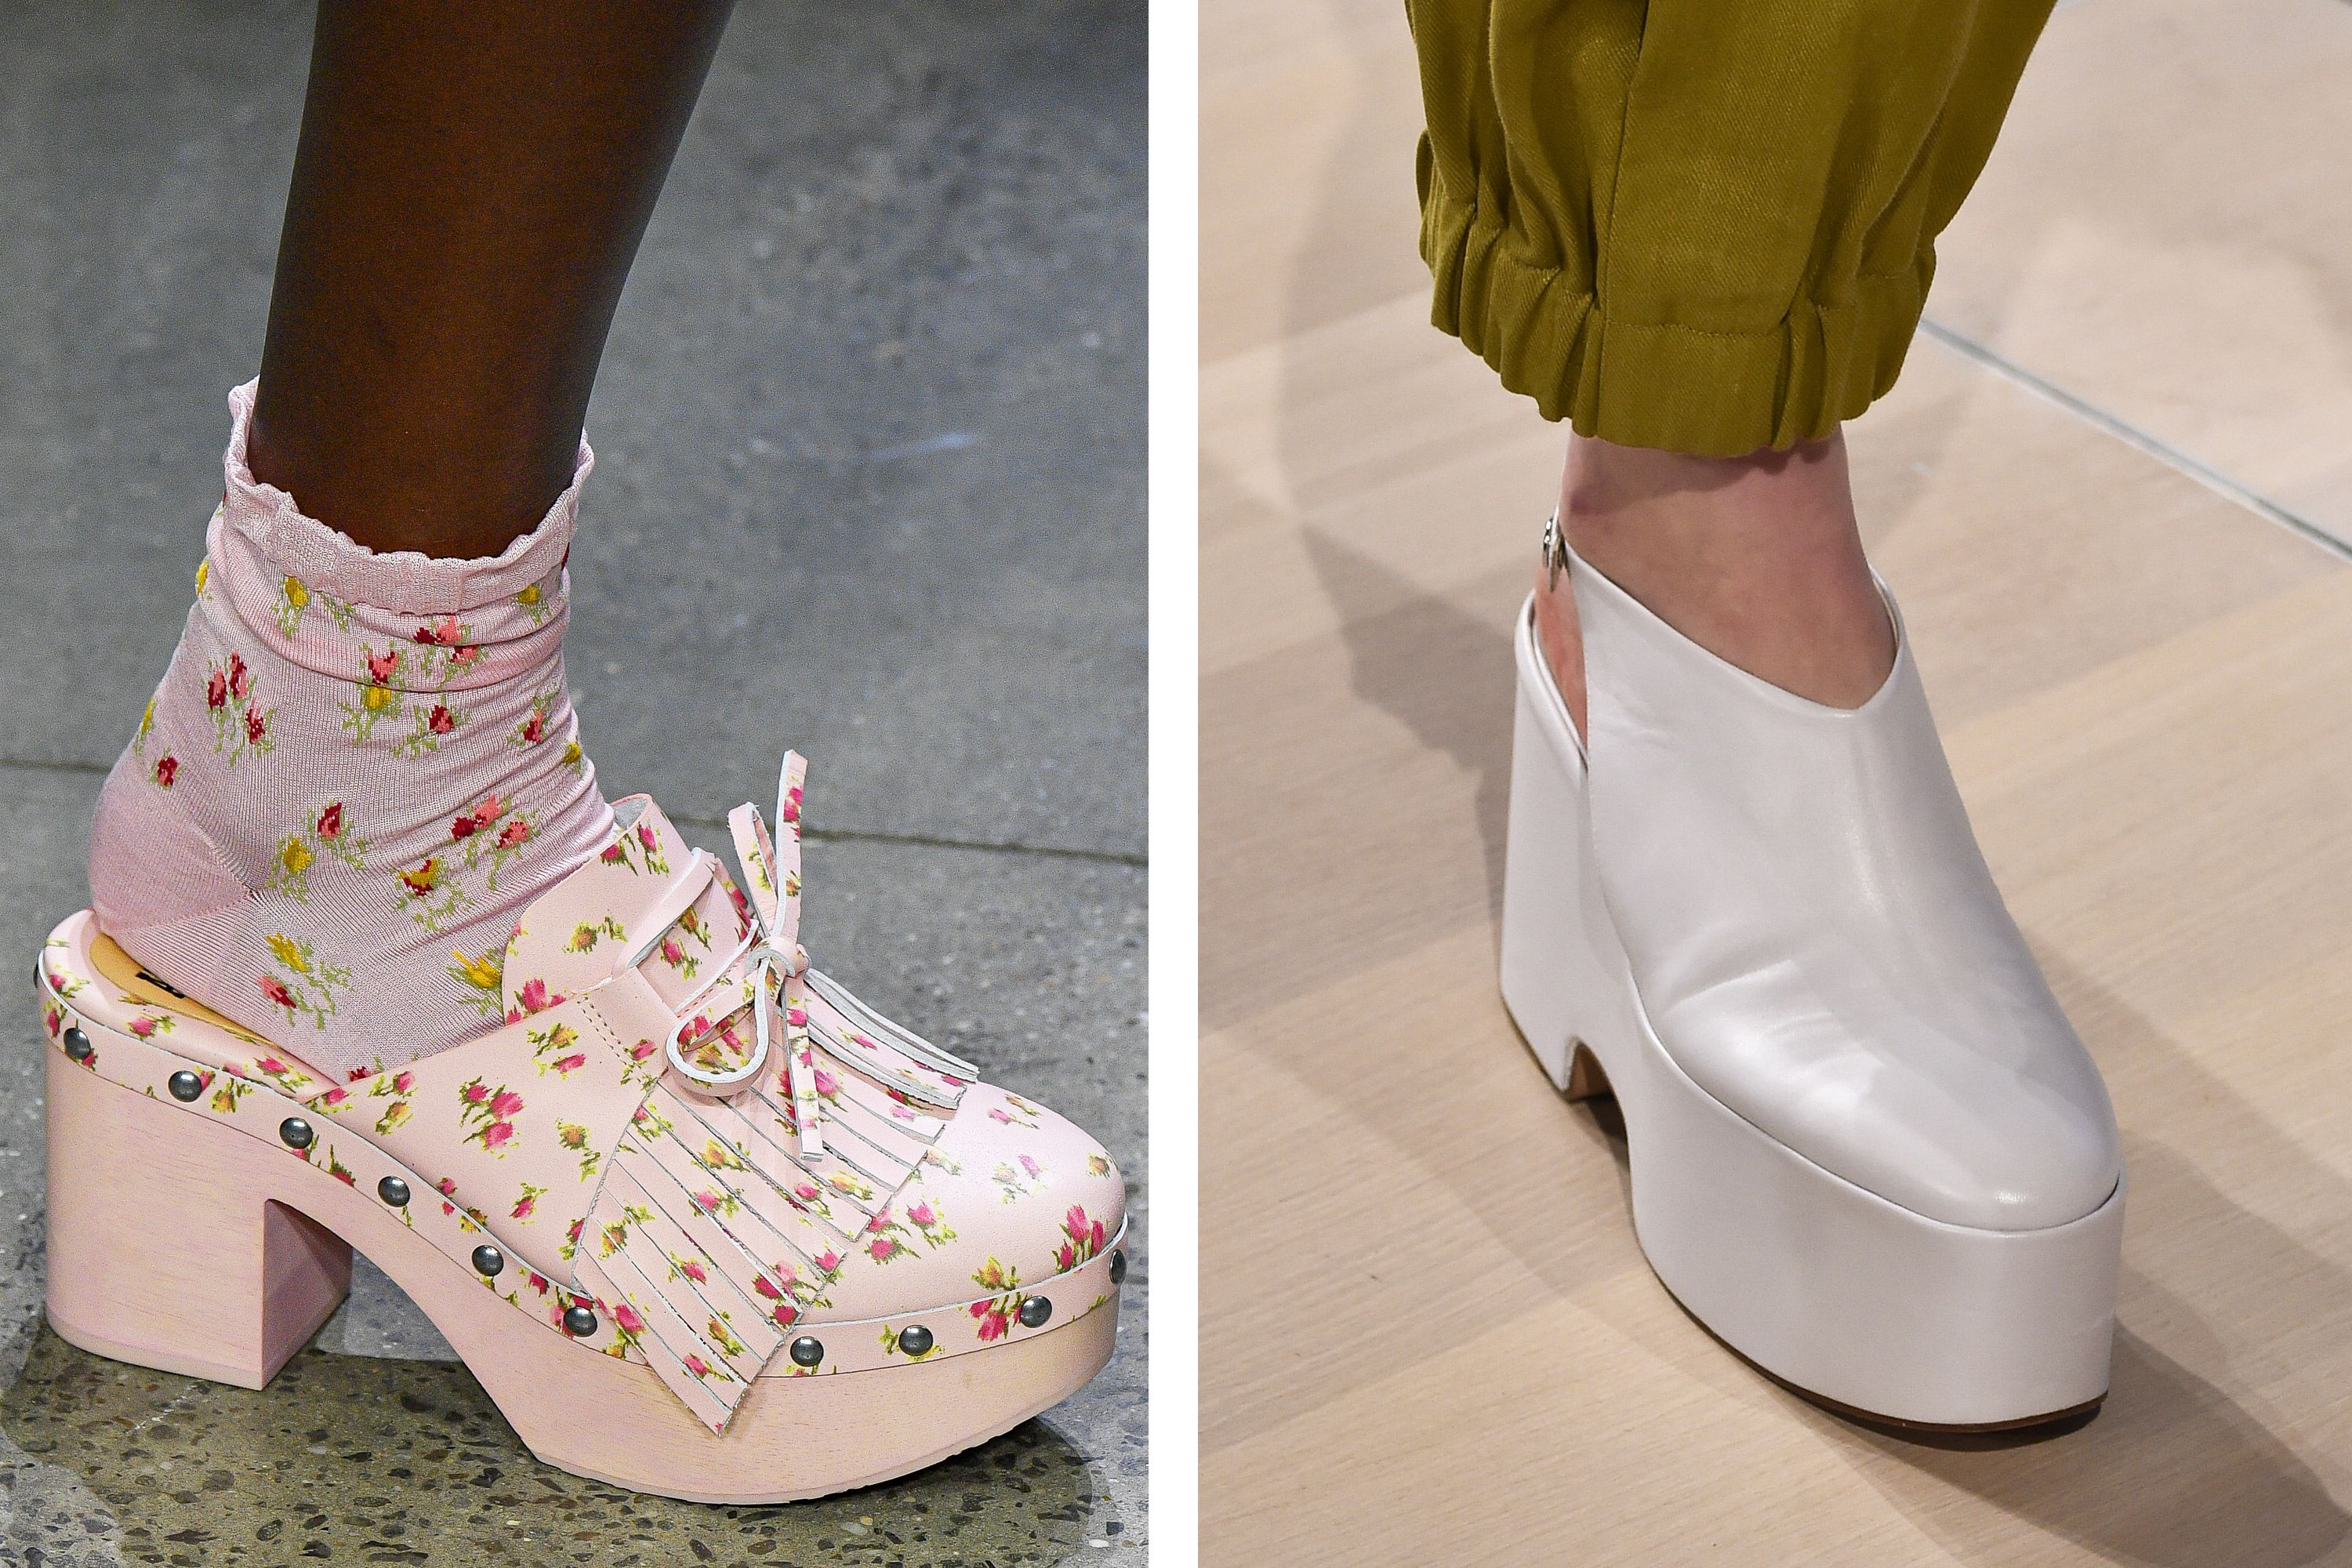 6 Shoe Trends for 2020 That Are Going to Be Everywhere